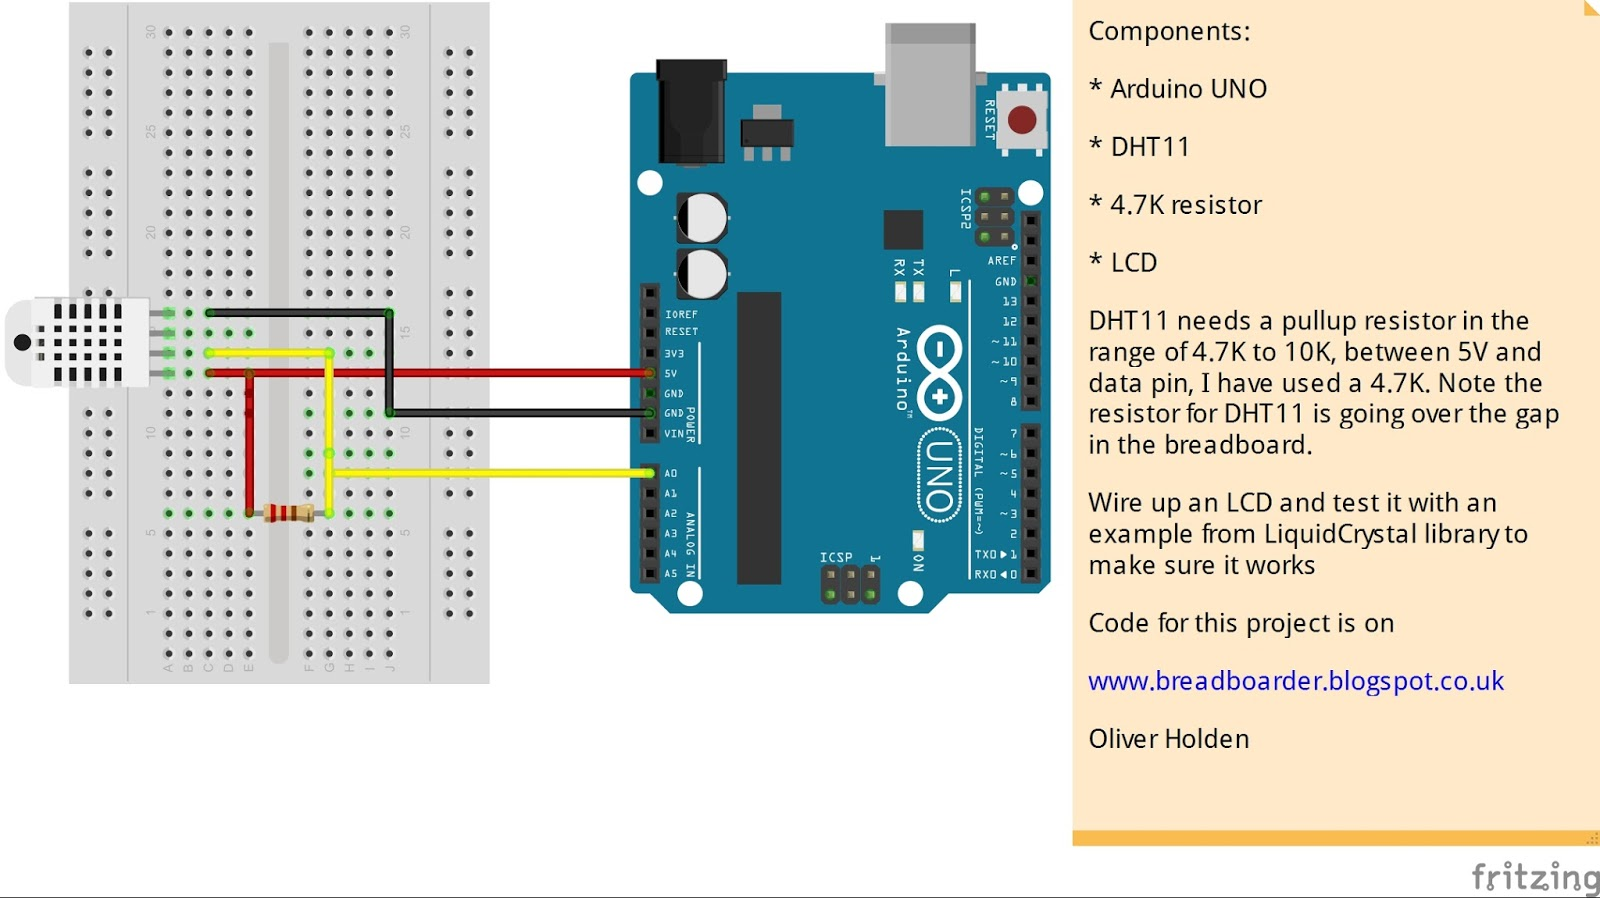 Arduino With Dht11 Prints Temperature 43 likewise Usare Libreria Wire I2c Arduino Con Eeprom 24aa1025 as well Datasheets Pin Outs furthermore 7segmentshield also Lcd Display Hello World. on arduino uno temperature sensor with display